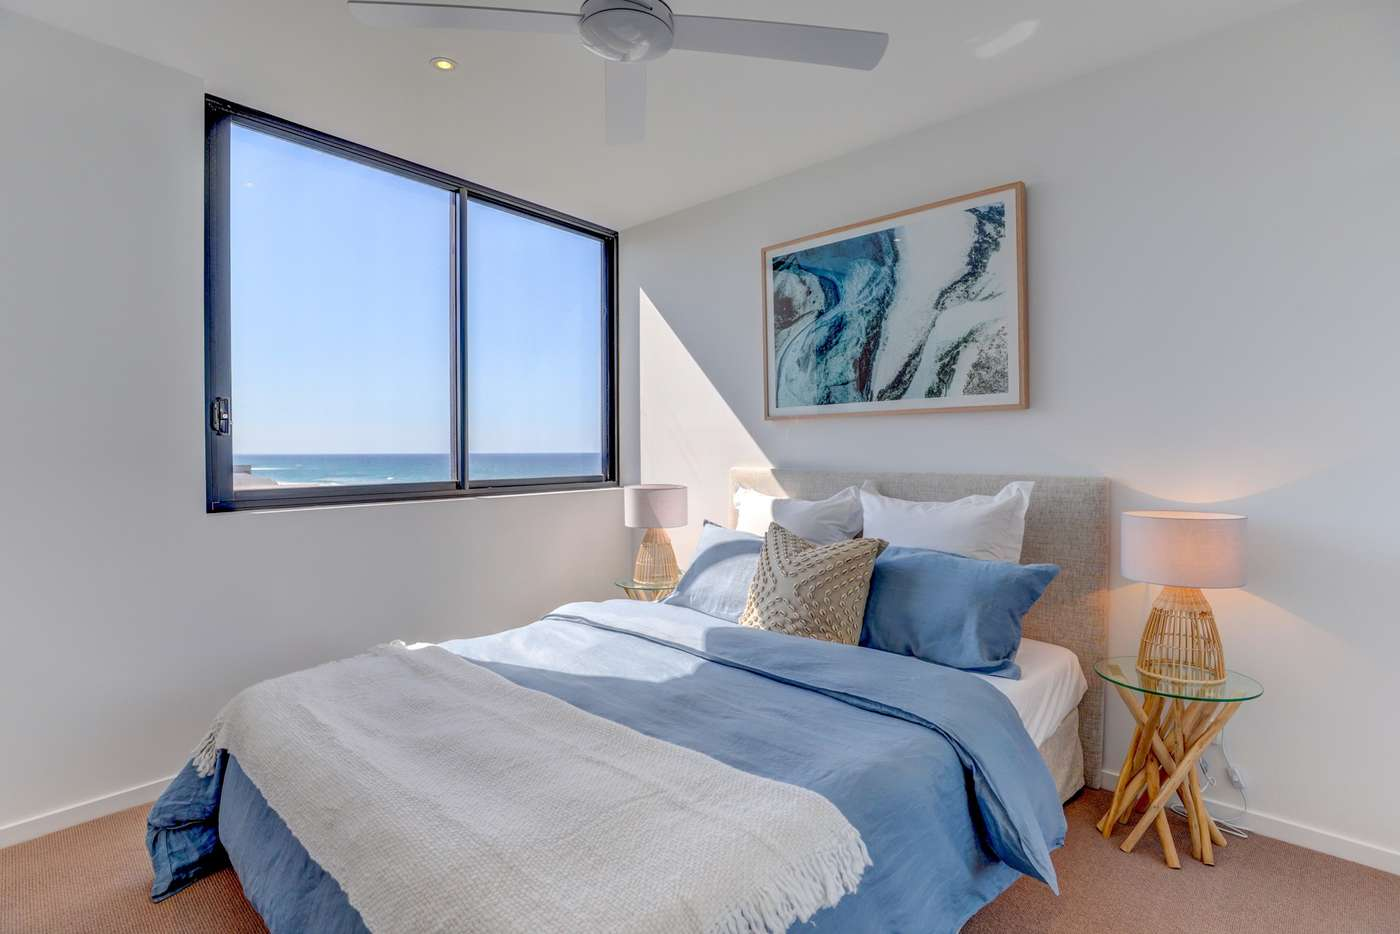 Sixth view of Homely apartment listing, 505/60 Jefferson Lane, Palm Beach QLD 4221